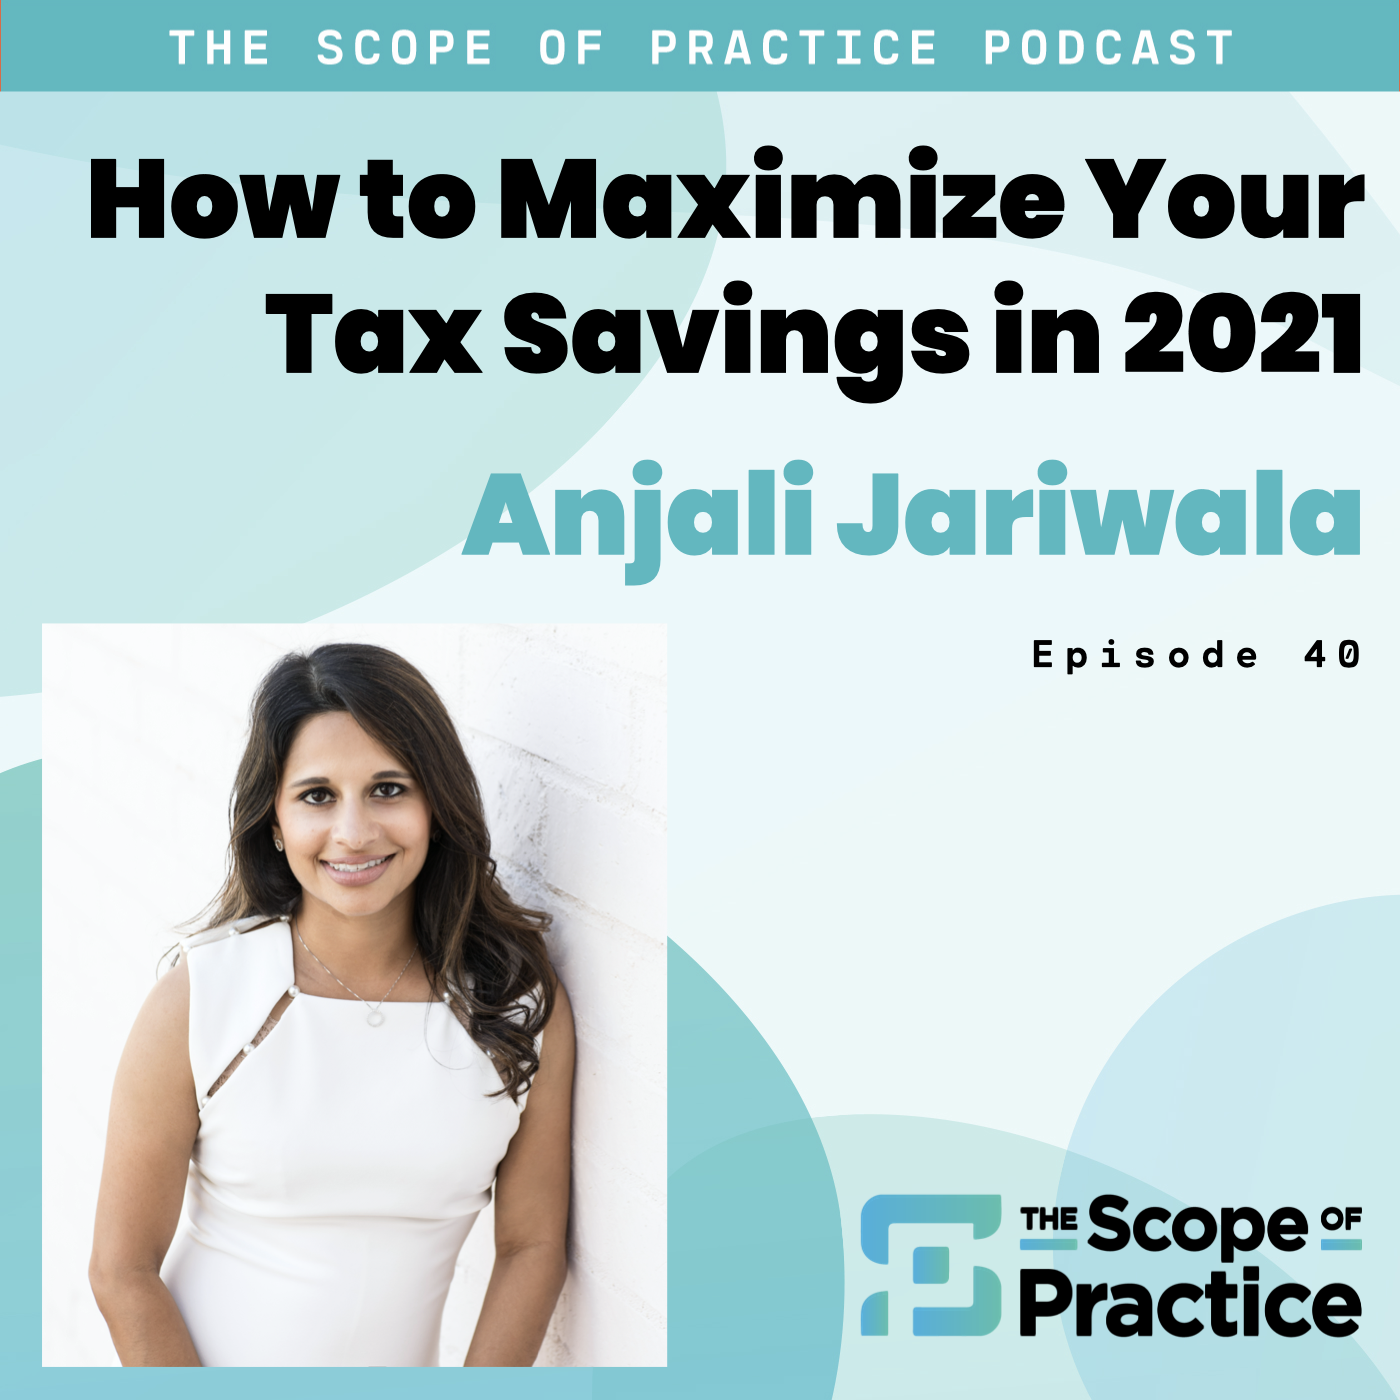 Anjali Jariwala, Founder of FIT Advisors, on taxes